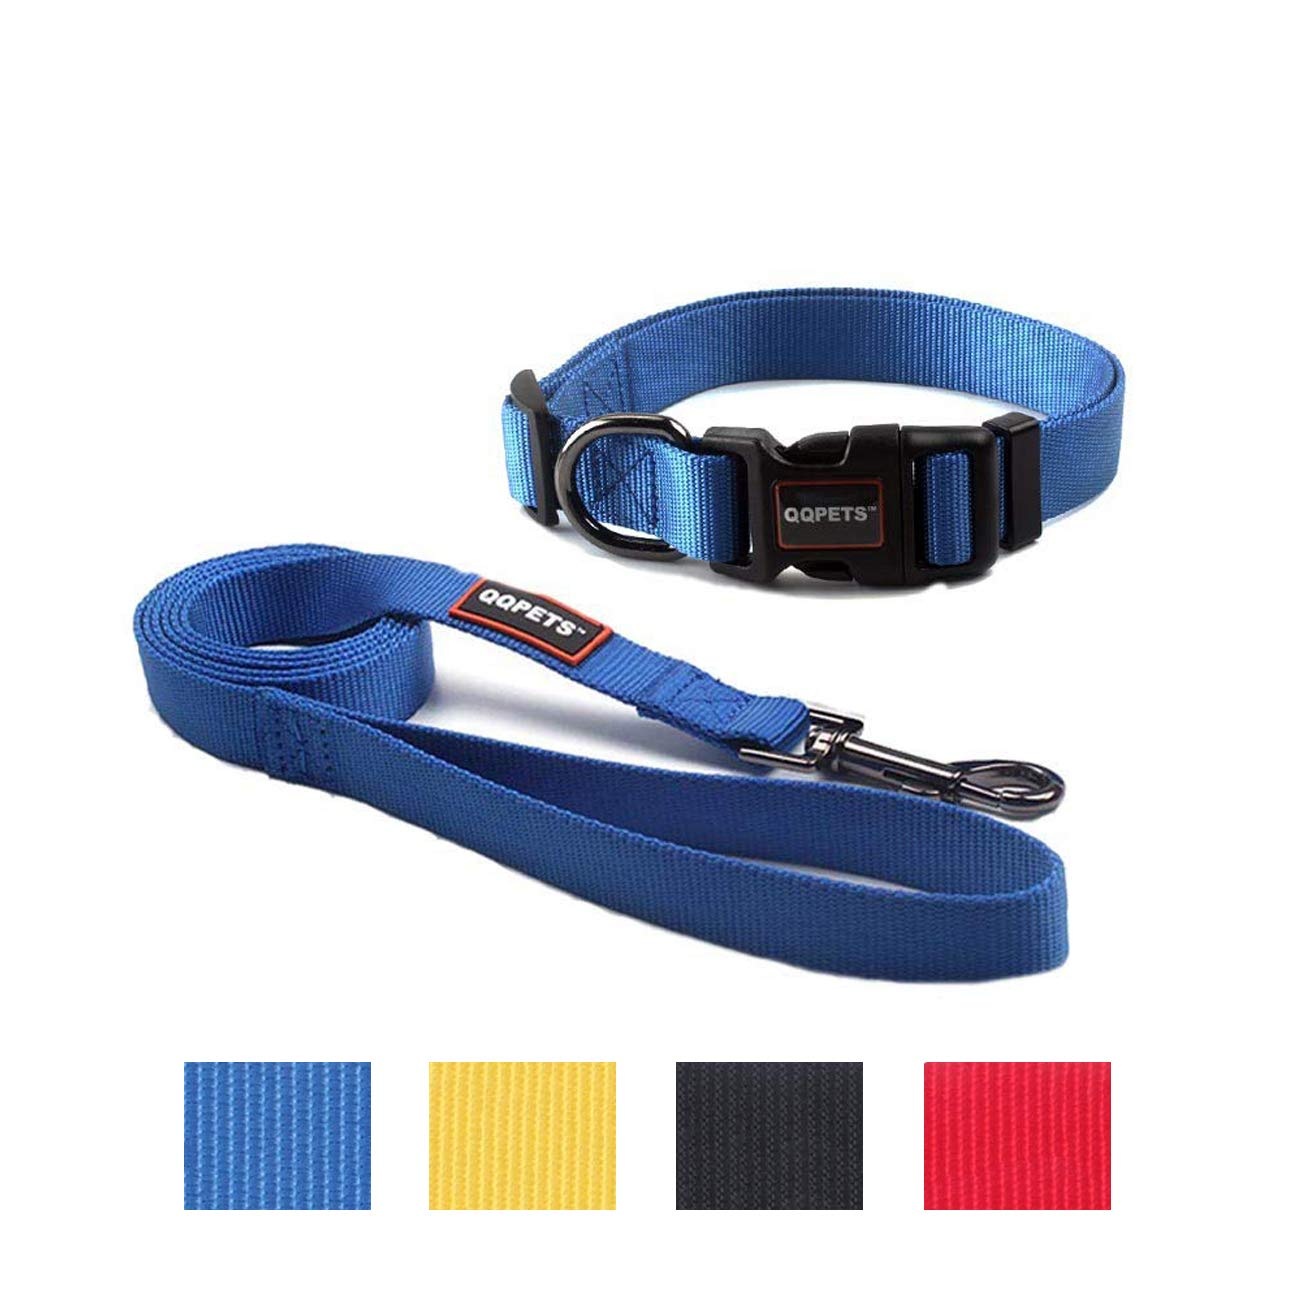 QQPETS Puppy Collar and Leash Set Dog Collars for Small Medium Big Dogs, Adjustable Collars Matching Heavy Duty Leashes Daily Walking